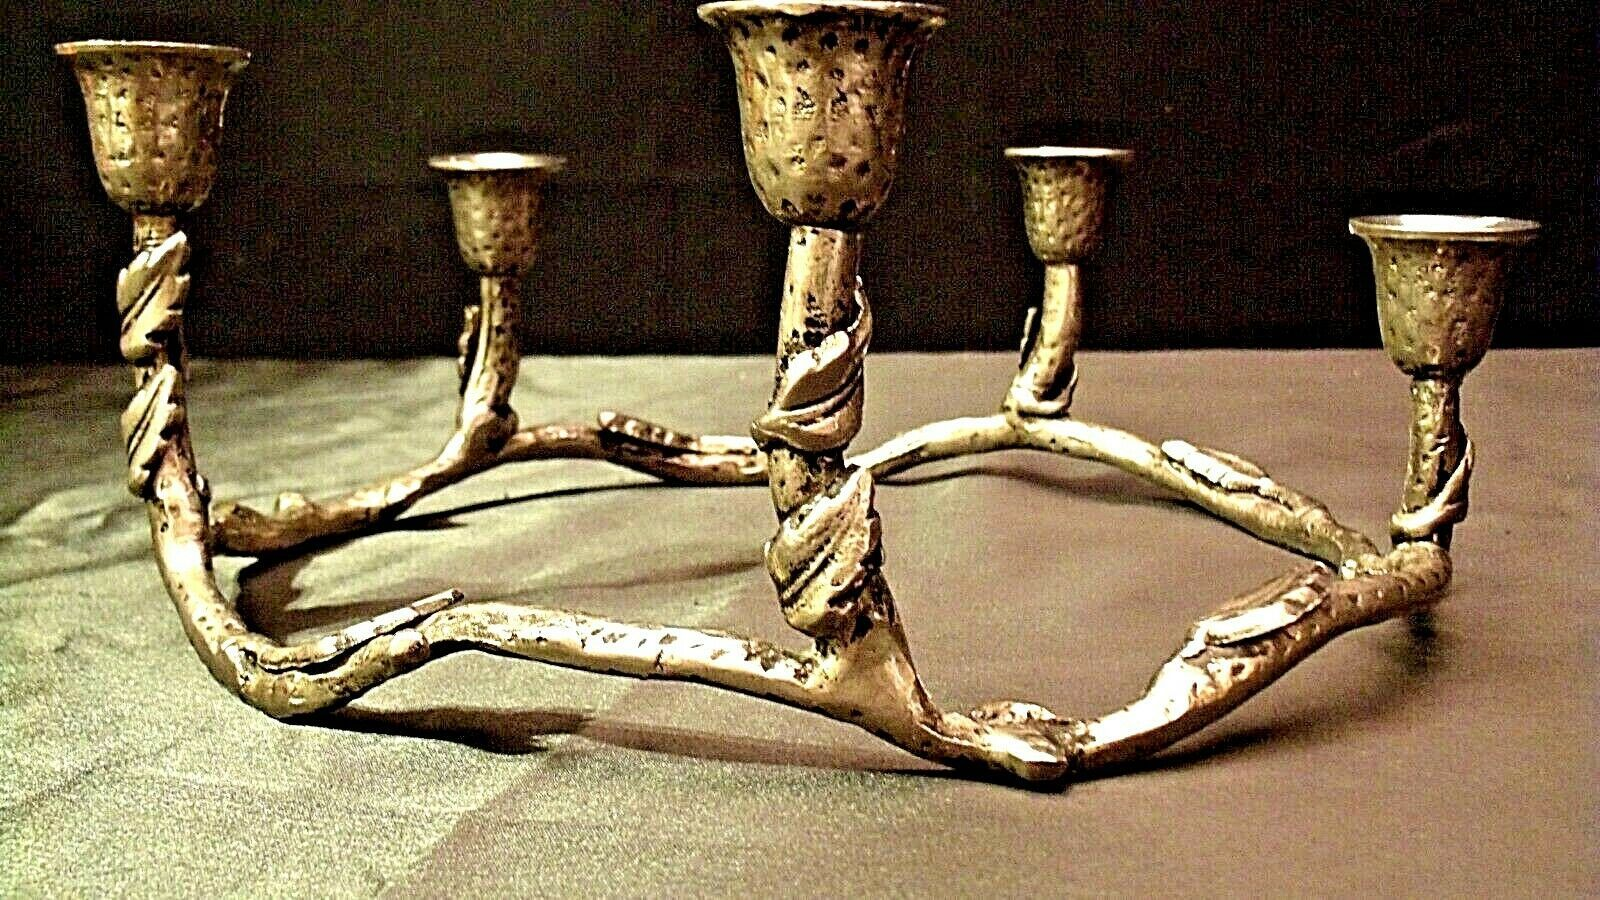 Circular Piece CandleHolder for 5 Candles AA20-2157 Vintage